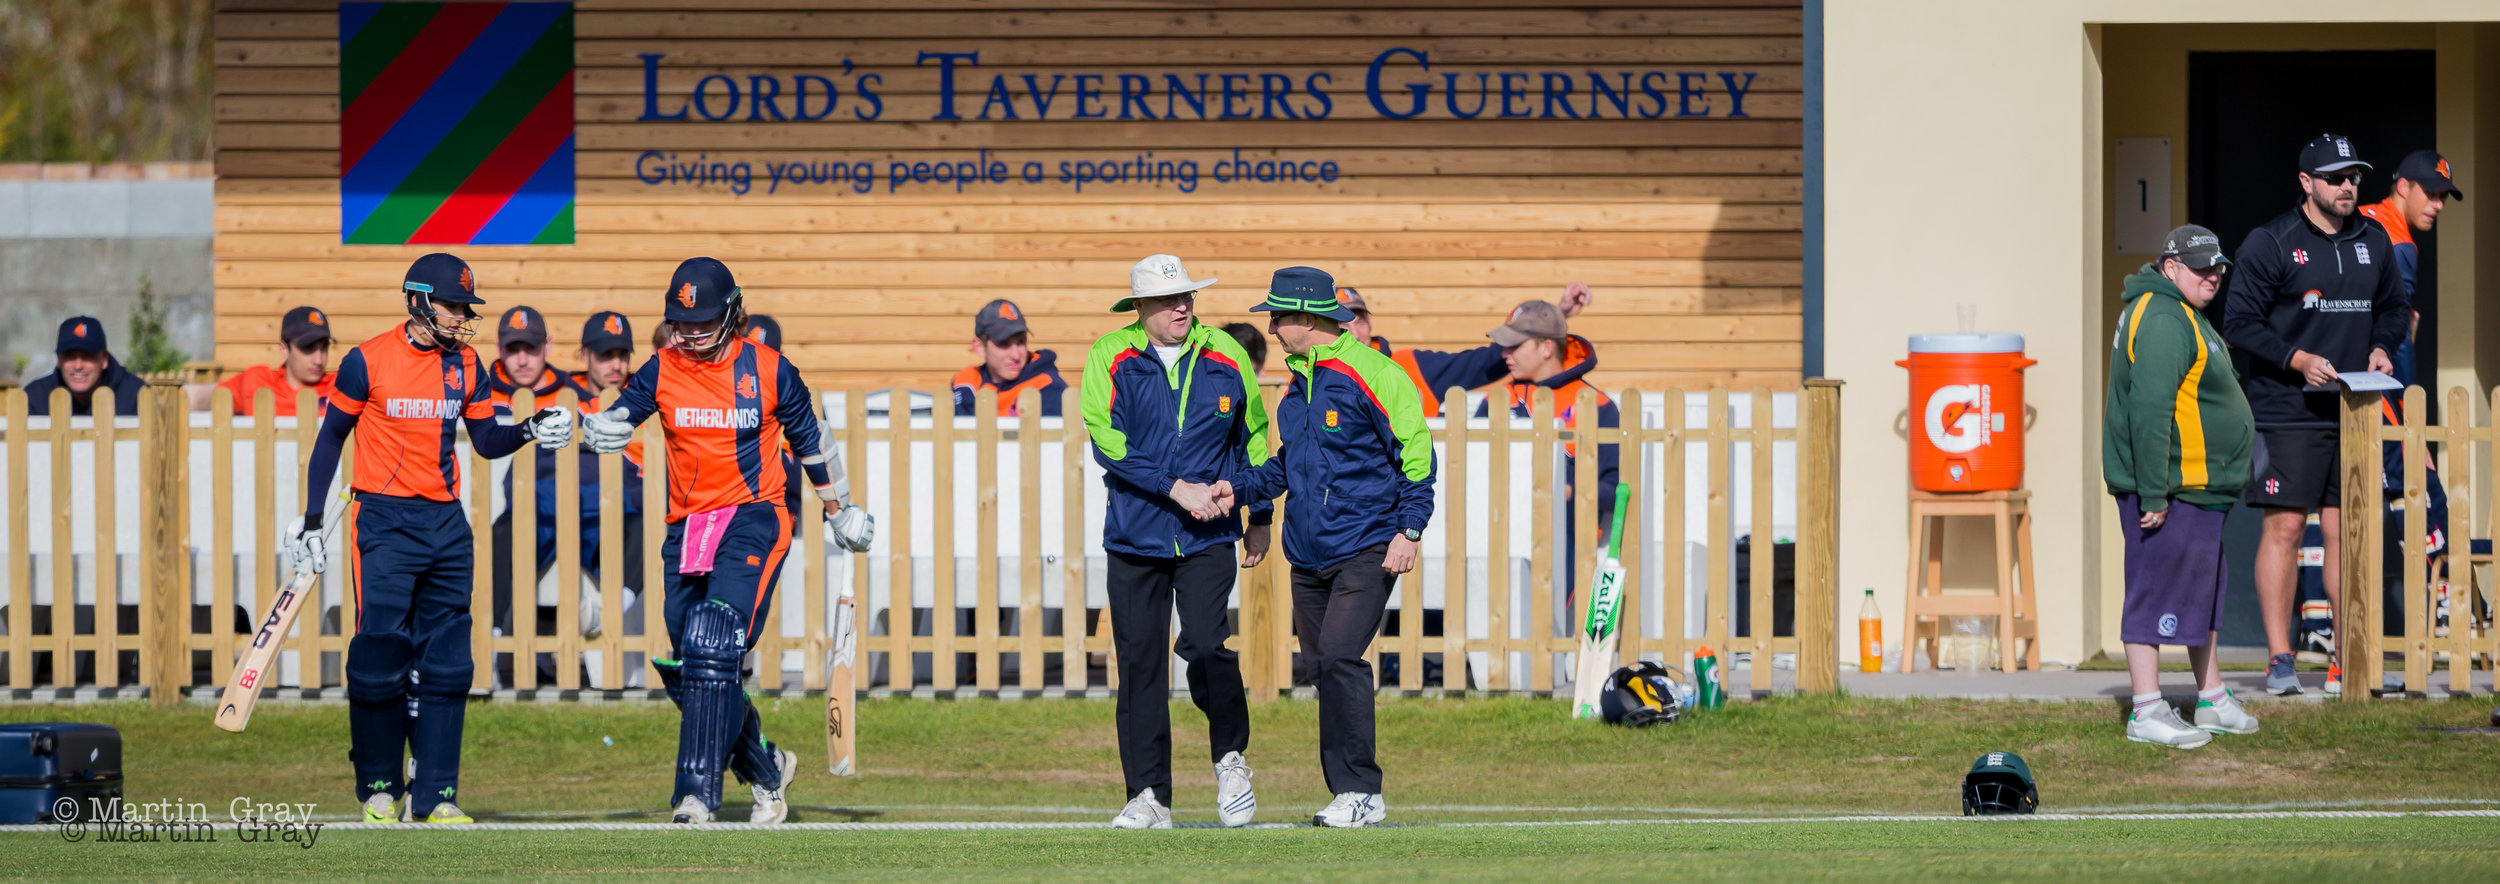 Guernsey v Netherlands T20 played at KGV Playing Fields 28th April 2017... A small selection with more to be processed later... Guernsey win by 4 wkts.... Well played guys!